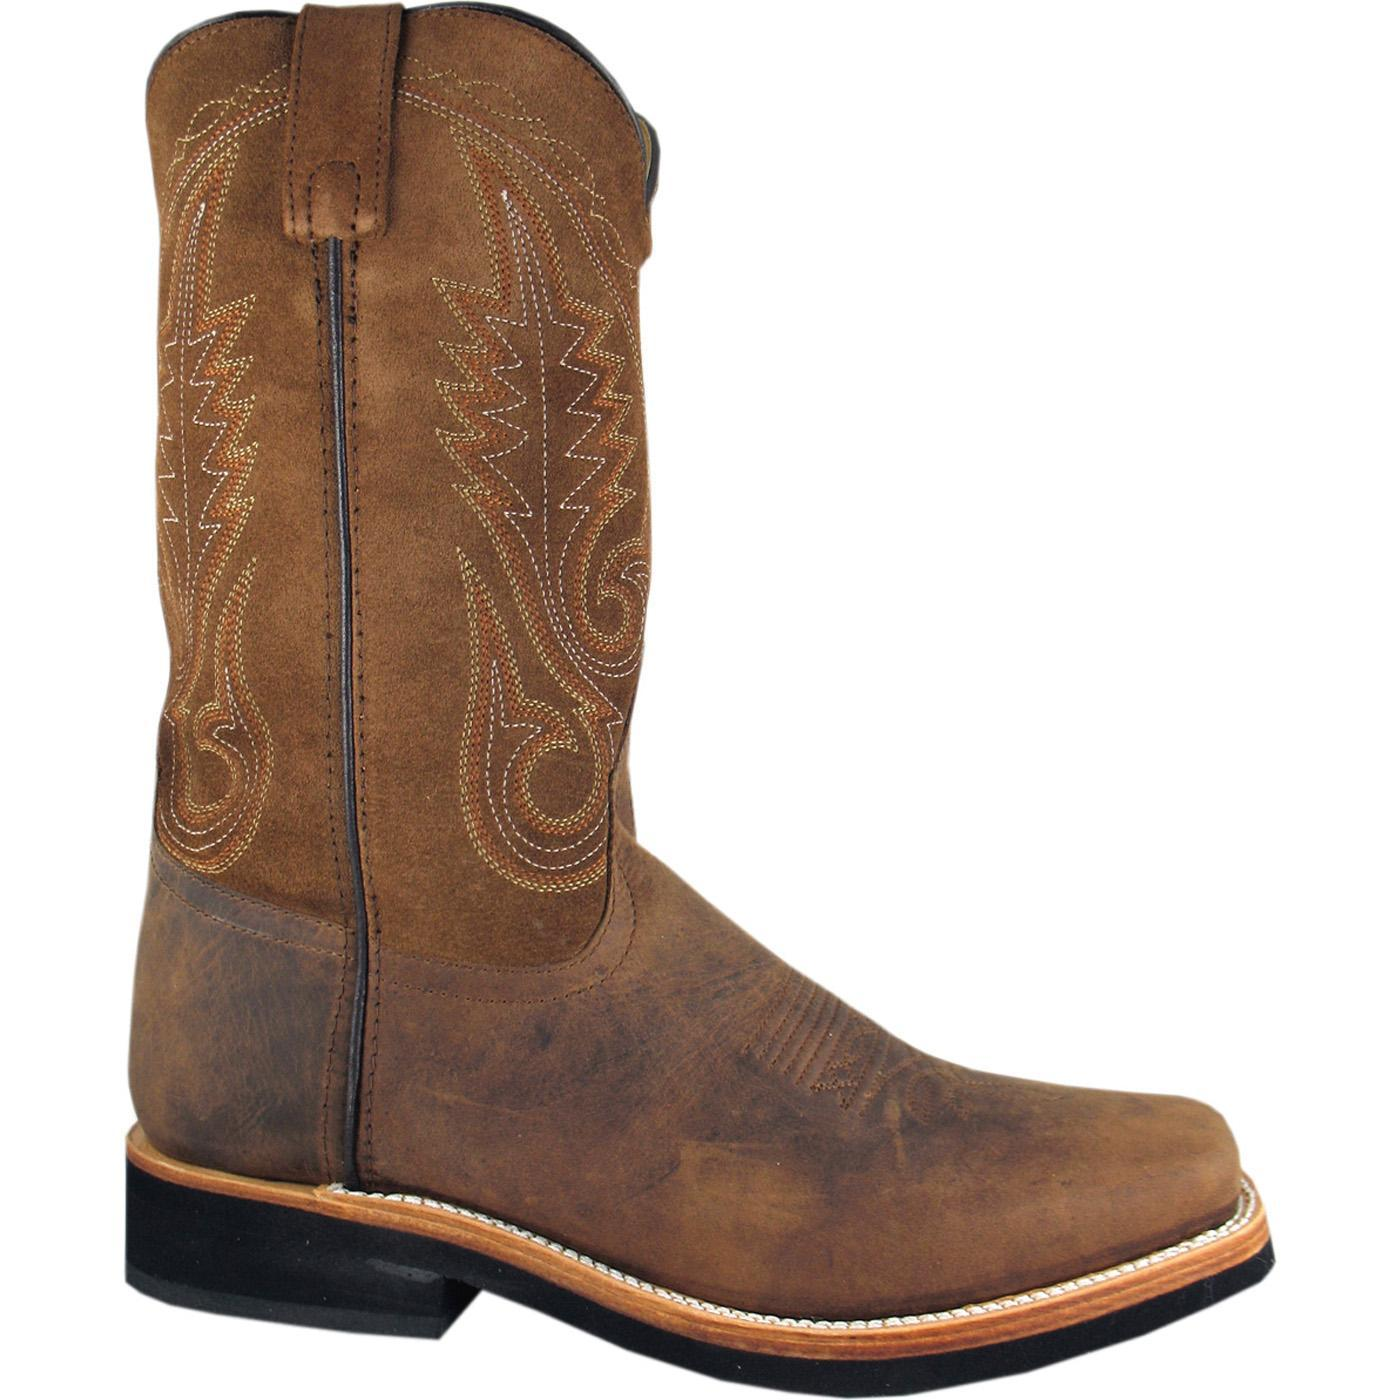 3d3a8c8540a Smoky Mountain Boonville Western Boot